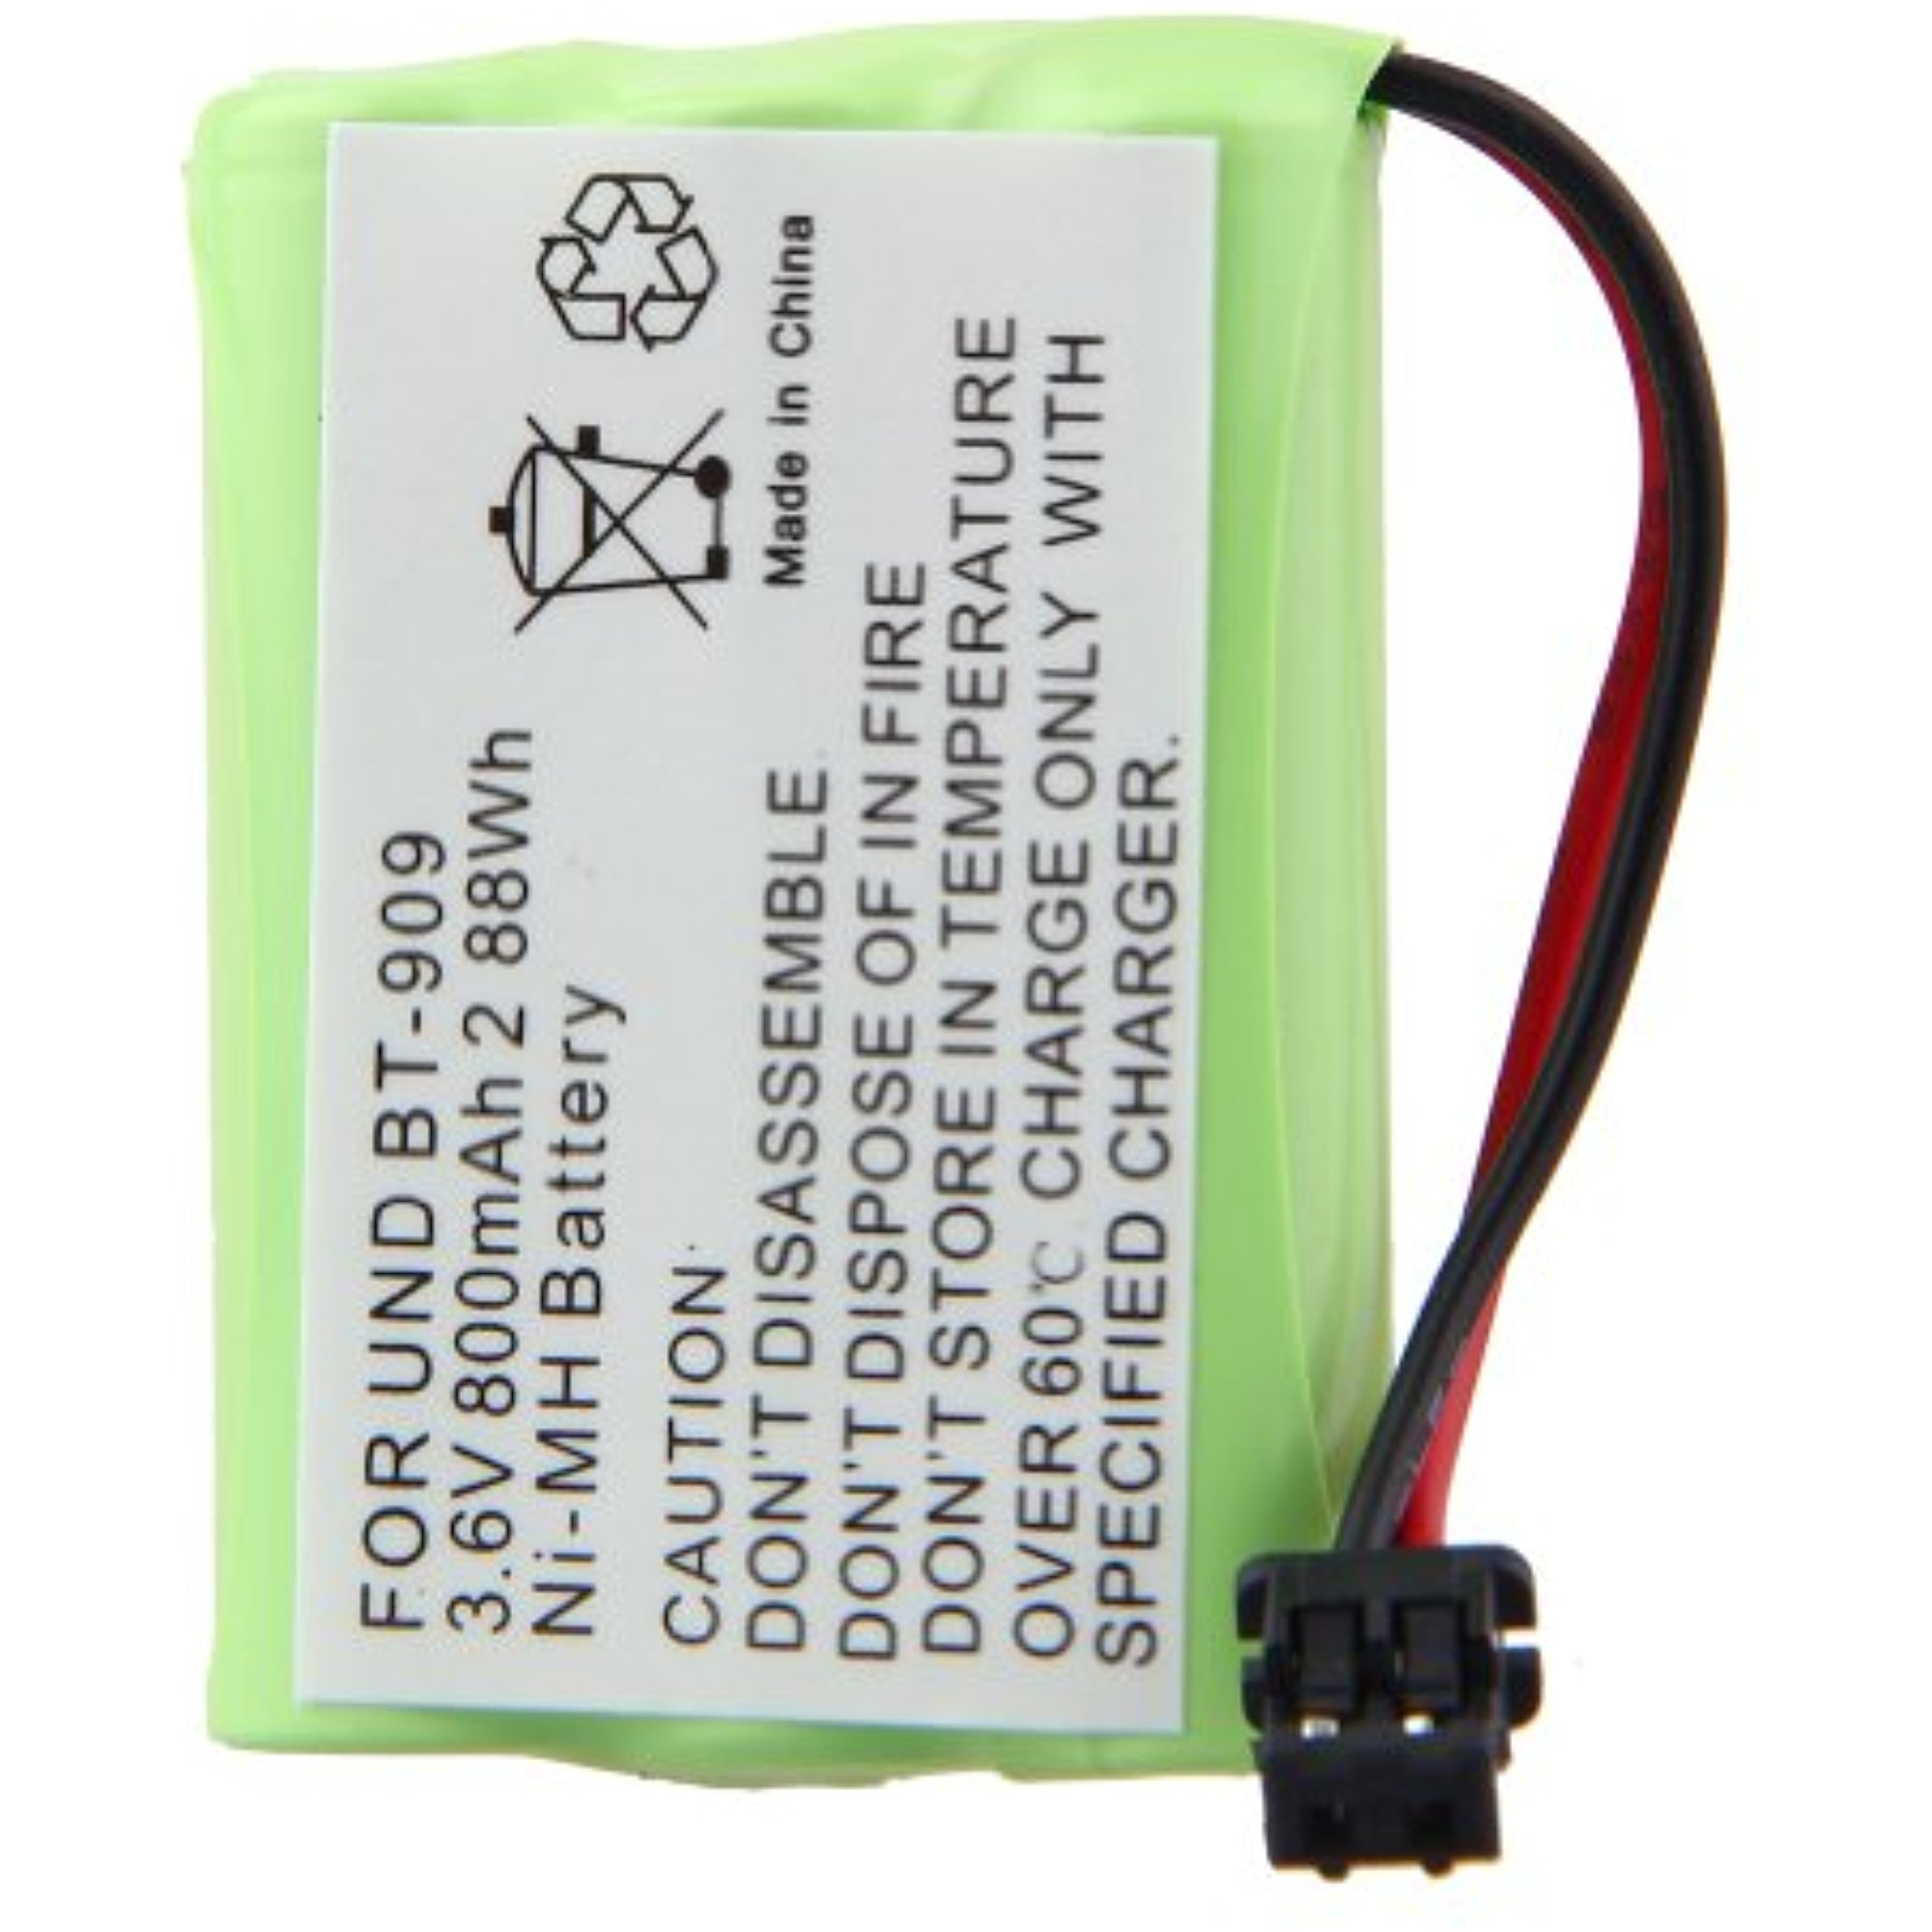 3.6V 800mAh Ni-MH Effective Office Cordless Phone Battery for Uniden: BT-909, DCT7383, DCT738-3T, DCT7383T,... by